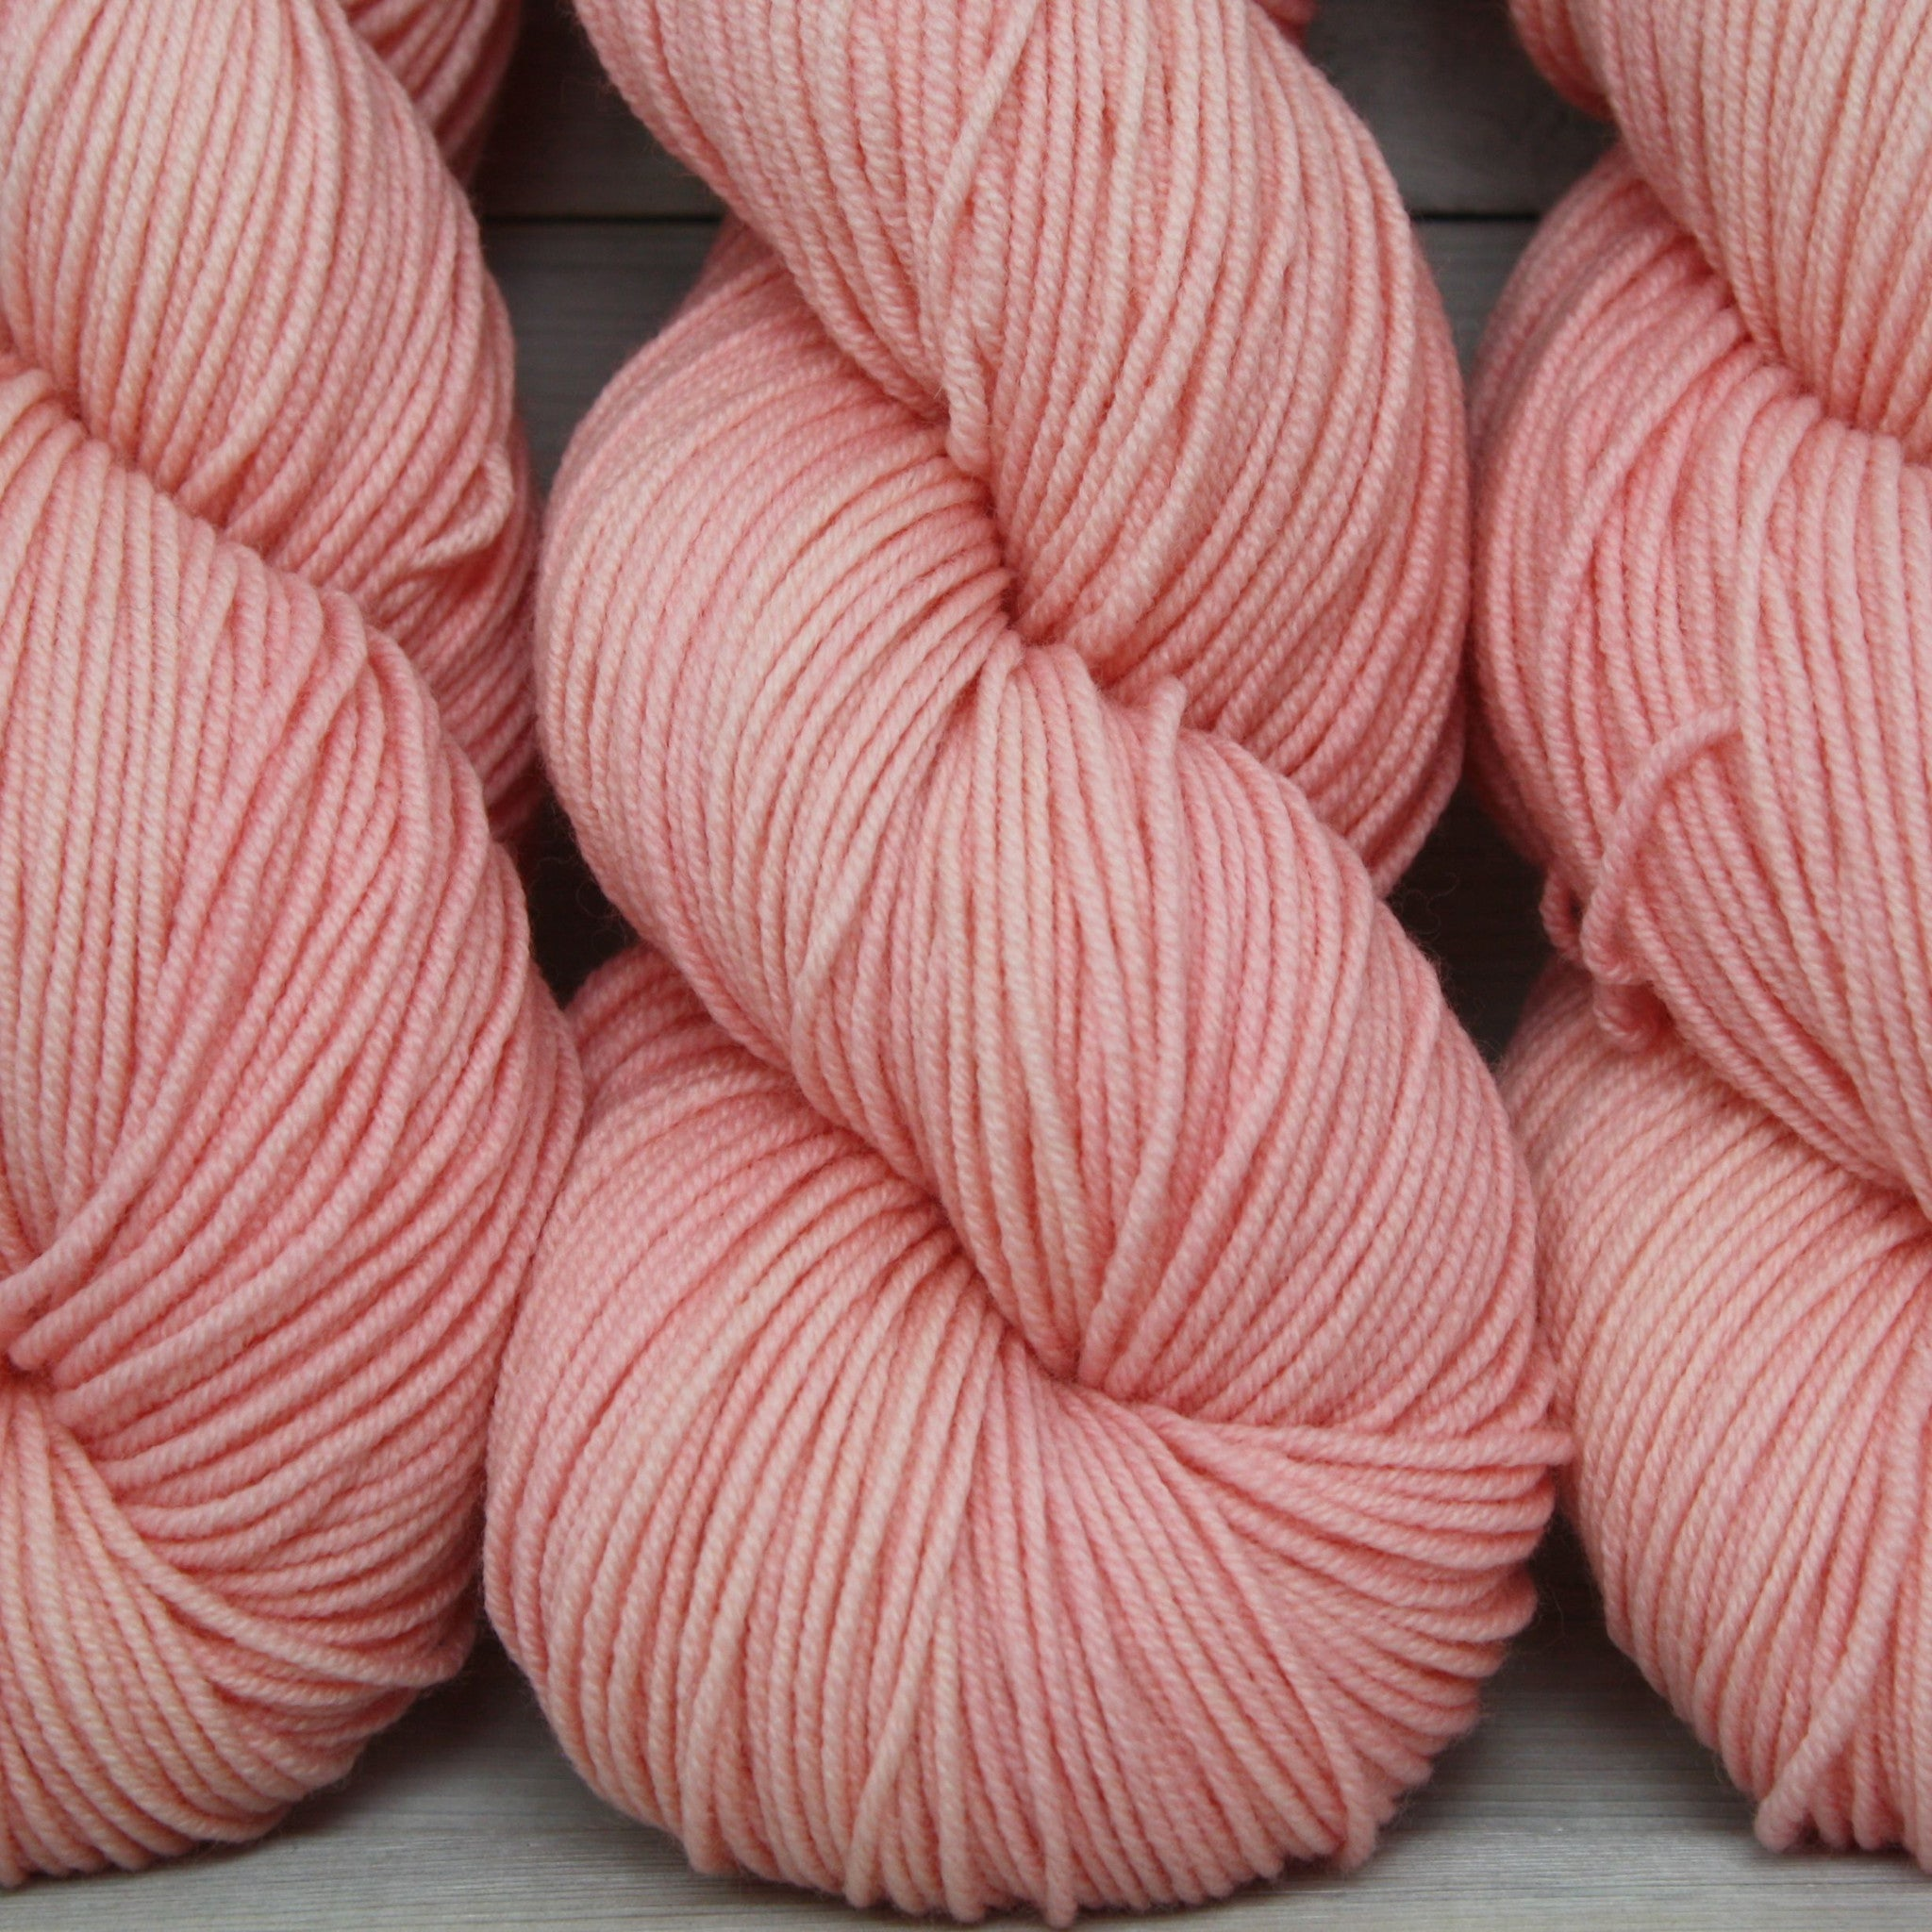 Aspen Sport Yarn | Colorway: Ballet Slipper